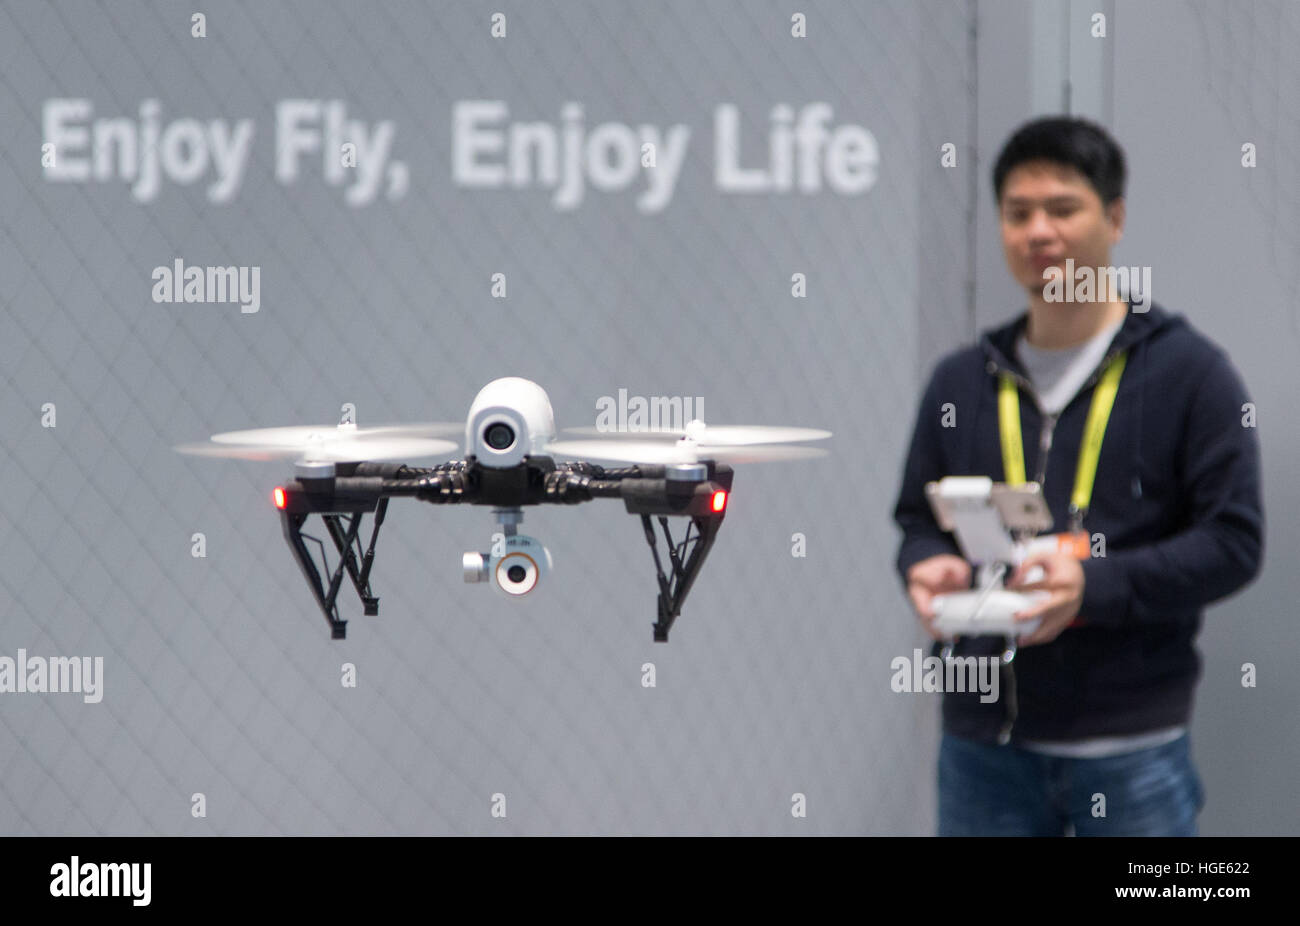 Las Vegas, US. 06th Jan, 2017. A remote-controlled drone is being operated at the CES technology trade fair in Las Stock Photo